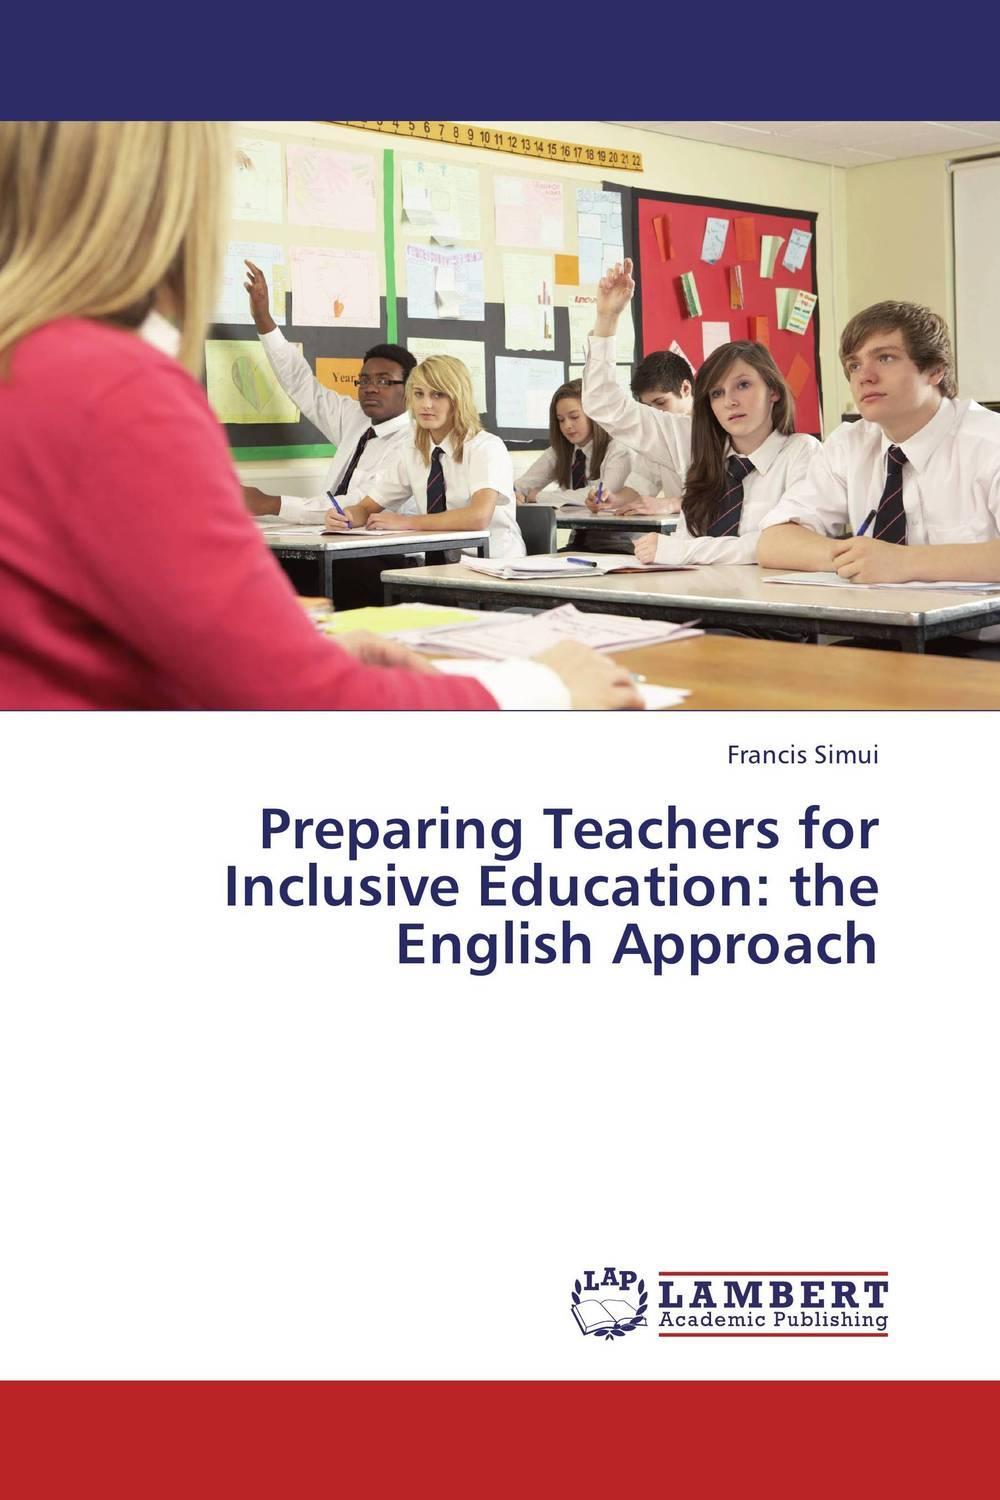 Preparing Teachers for Inclusive Education: the English Approach reflective approach to education